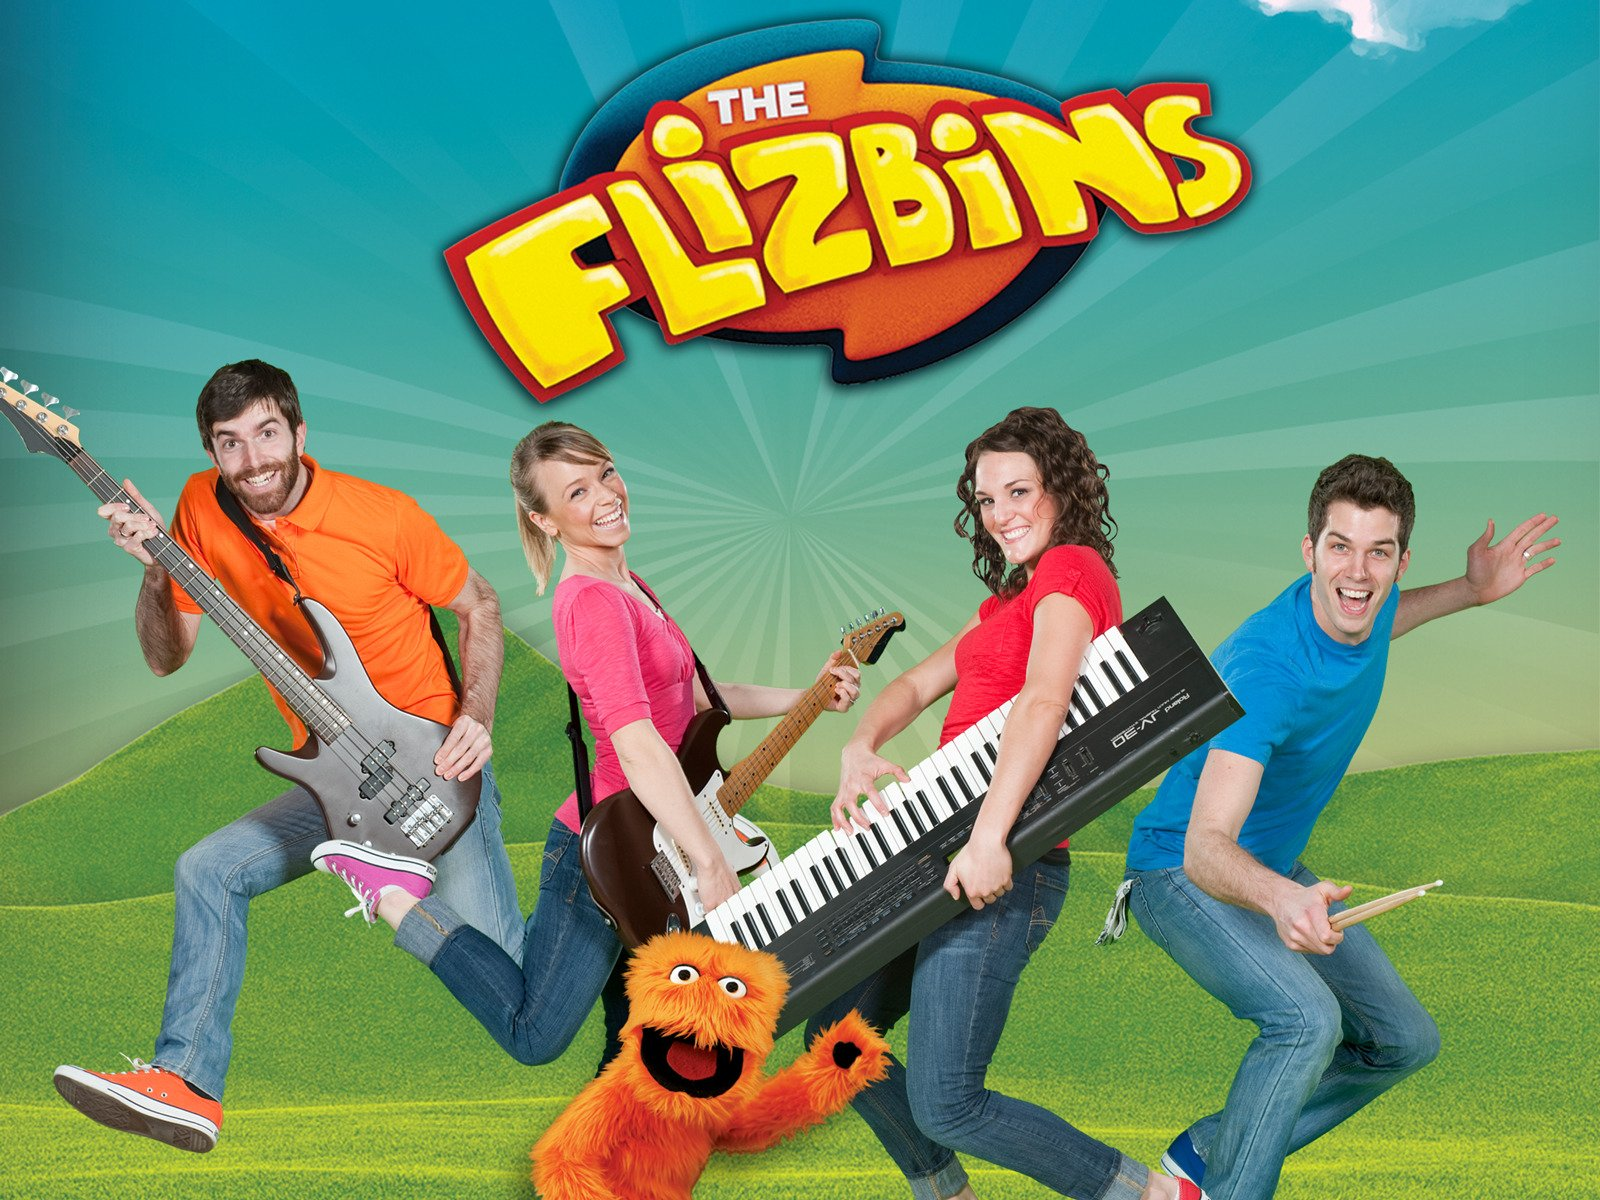 The Flizbins - Season 1